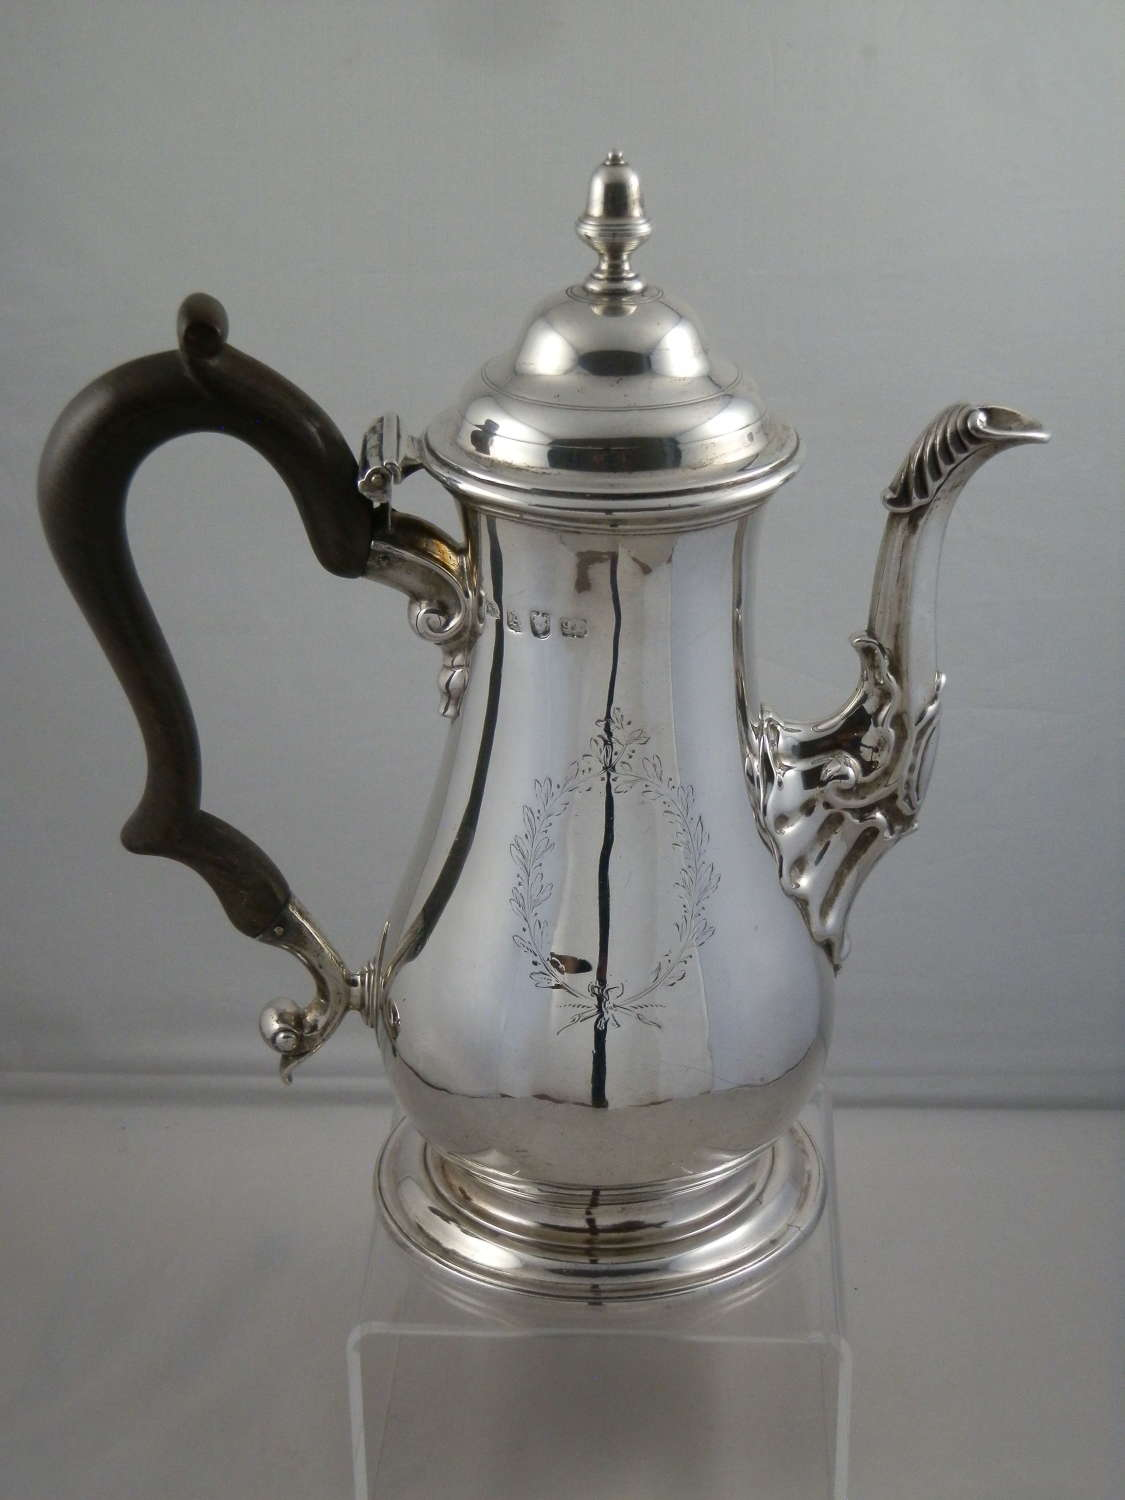 George II silver coffee pot, London 1756